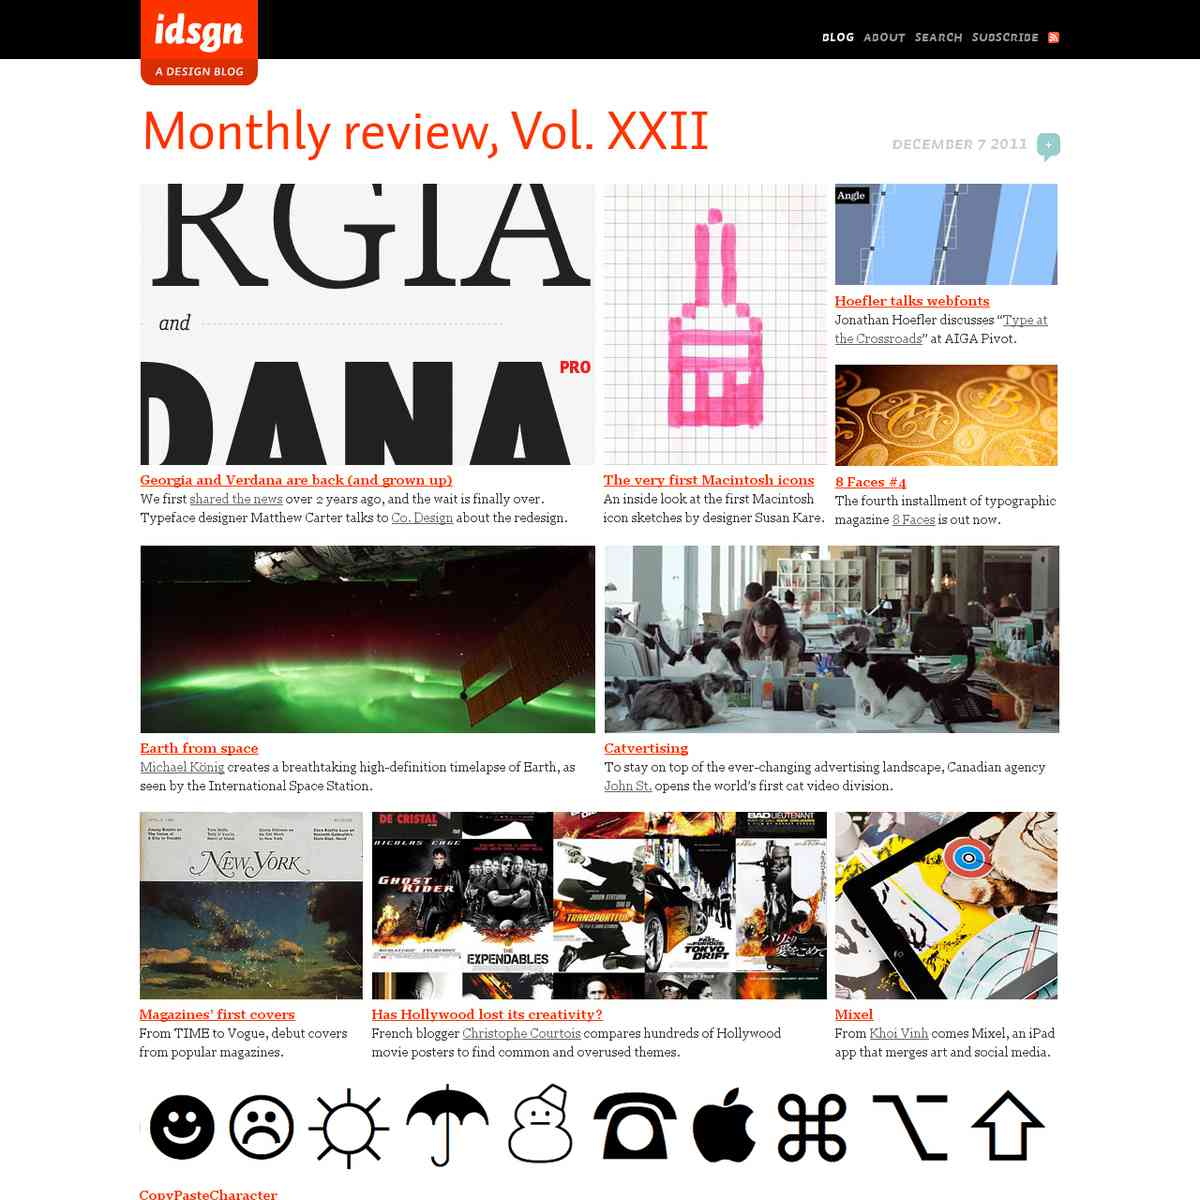 Monthly review, Vol. XXII: idsgn (a design blog)